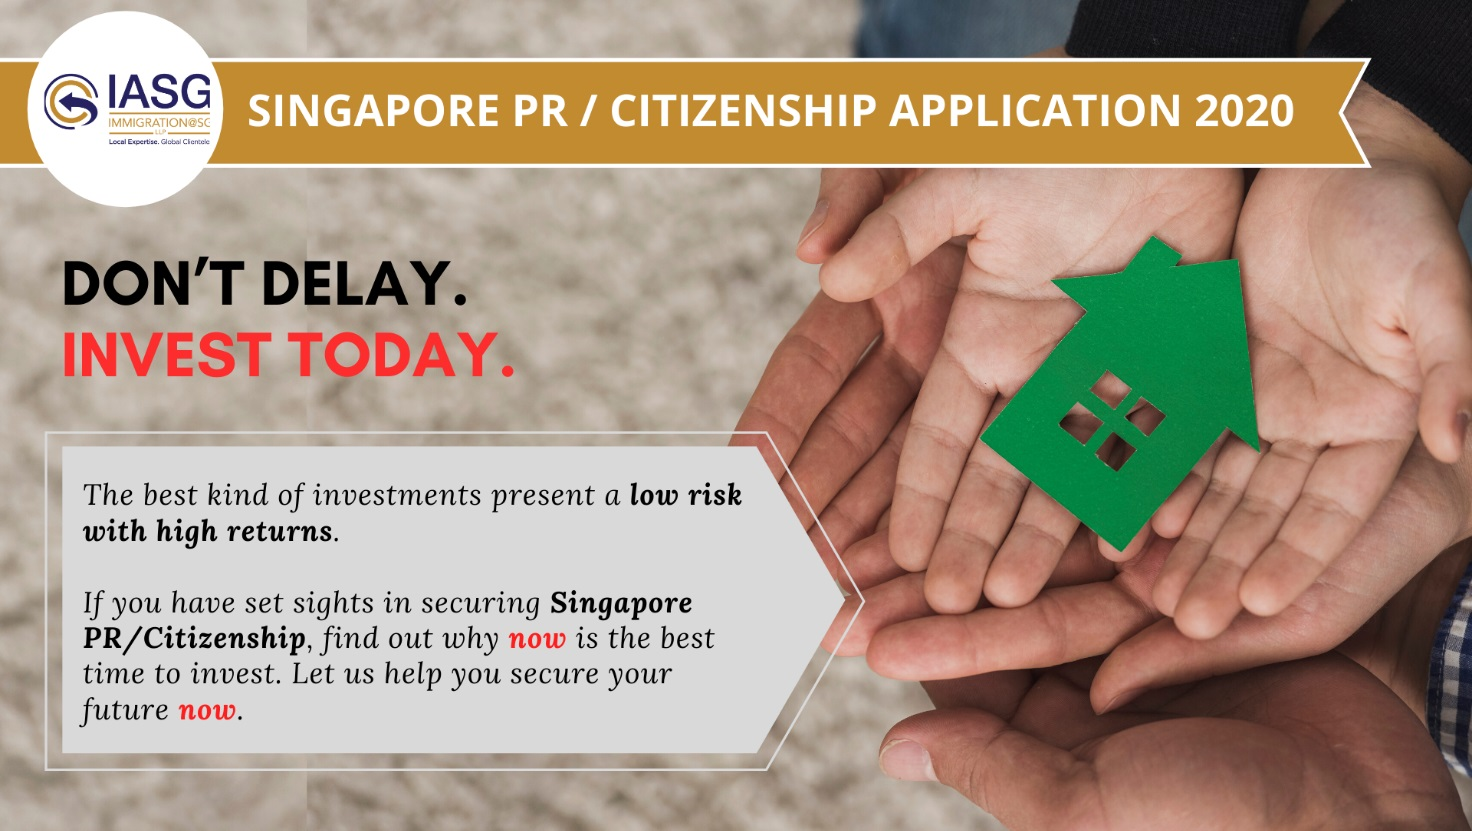 Apply and Secure Singapore Citizenship and Permanent Residency with IASG